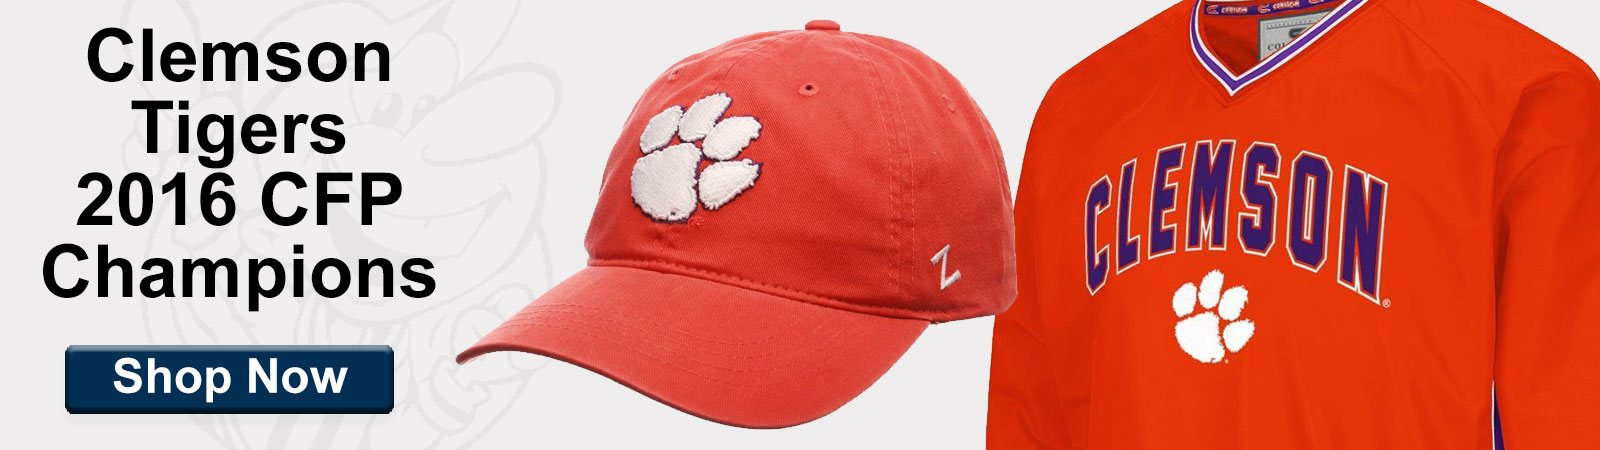 Shop Clemson Tigers College Football Championship Gear!